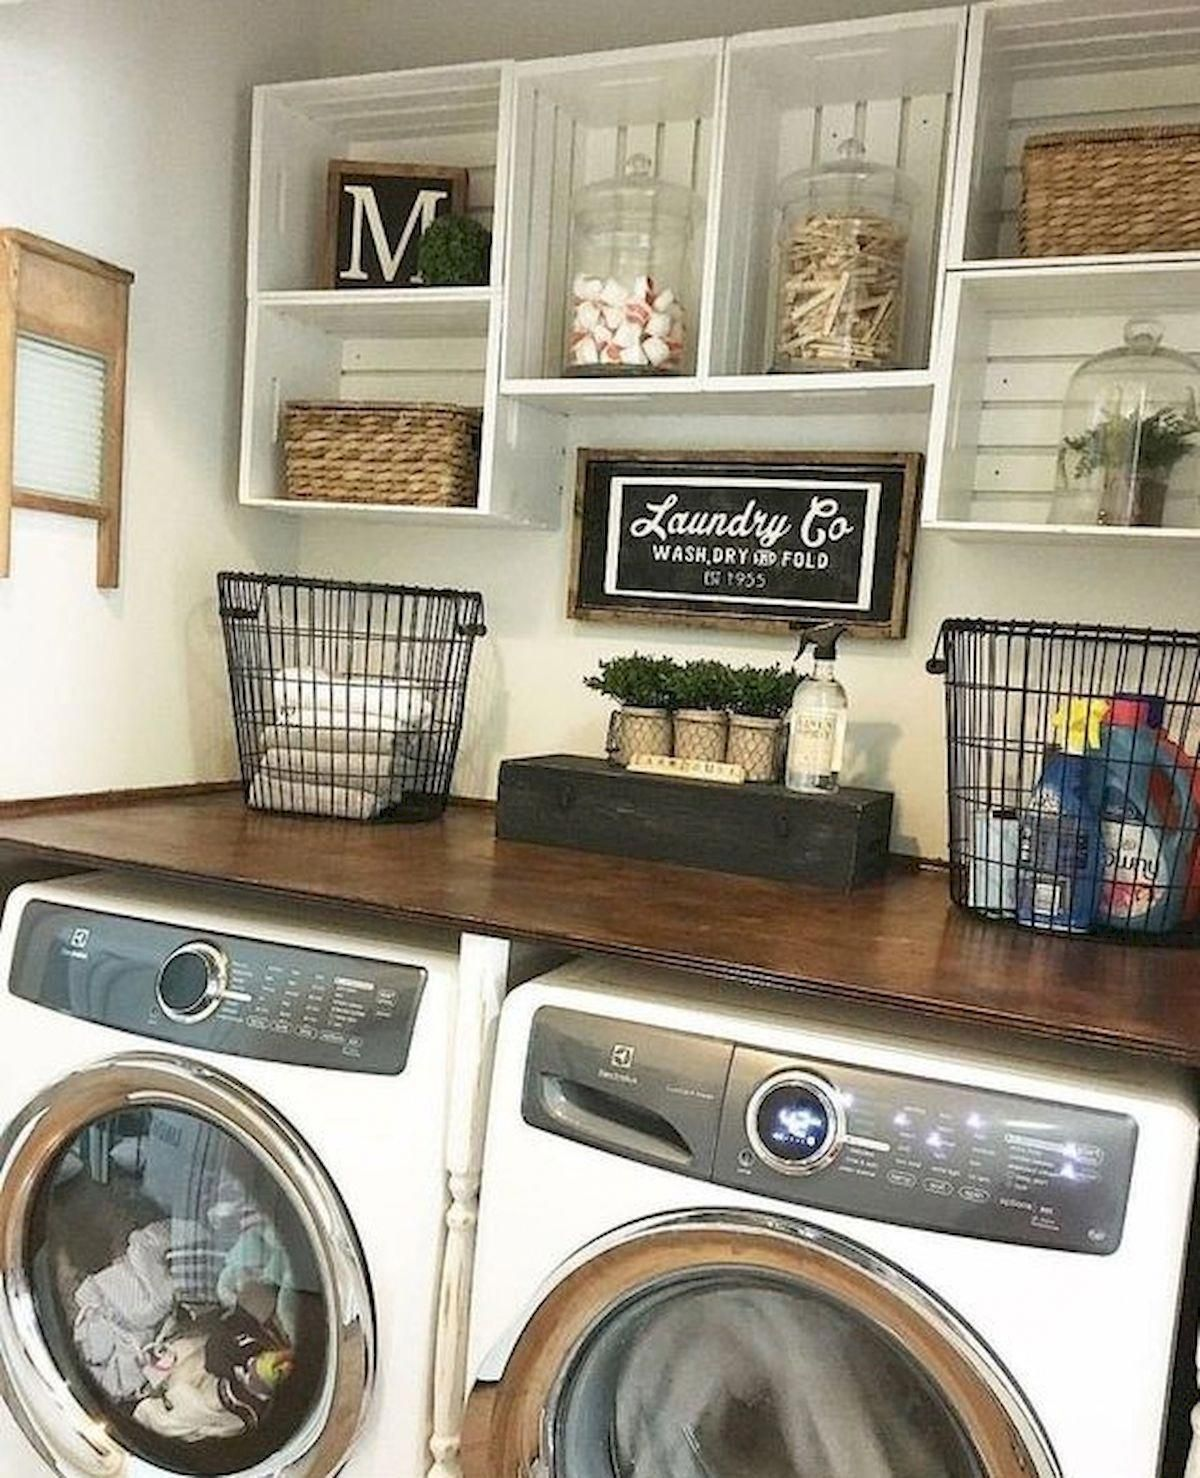 The Shower Curtains Can Match Your Restroom S Theme For Added Charm Select A Shower Drape Liner Tha Remodel Bedroom Tiny Laundry Rooms Farmhouse Laundry Room